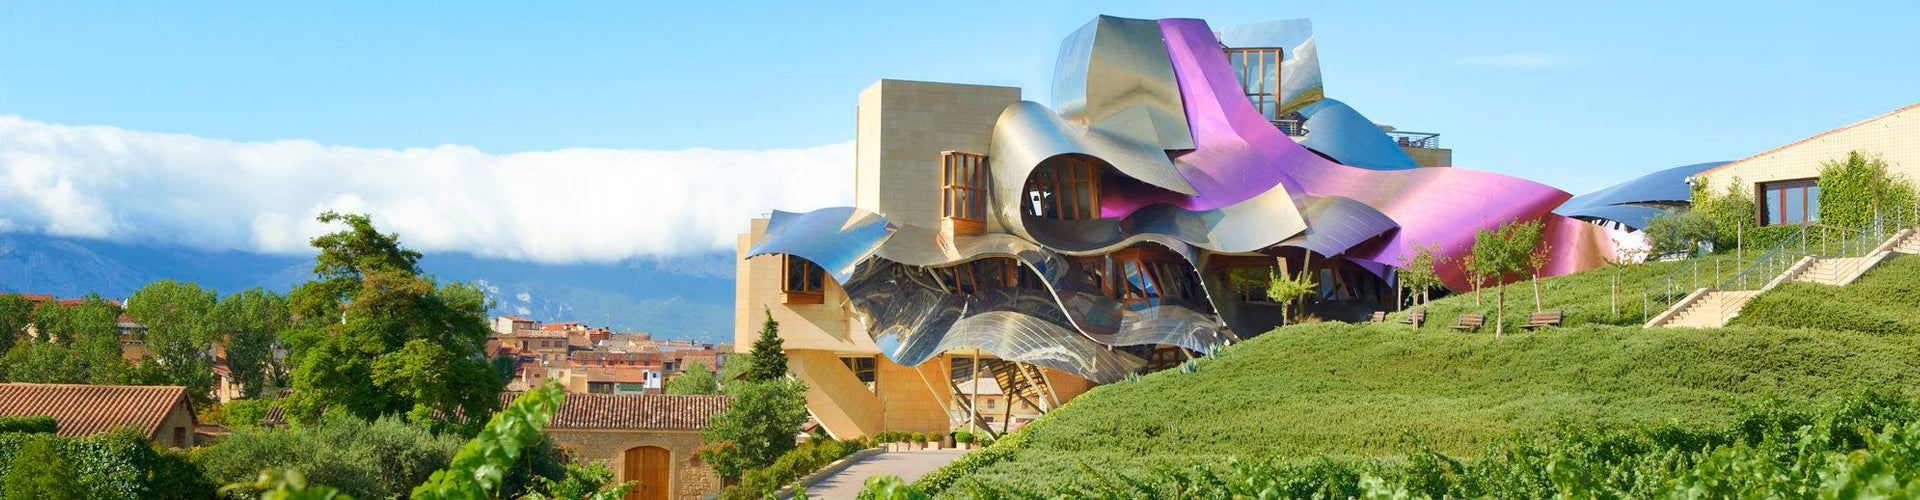 Marqués de Riscal City of Wine in Rioja